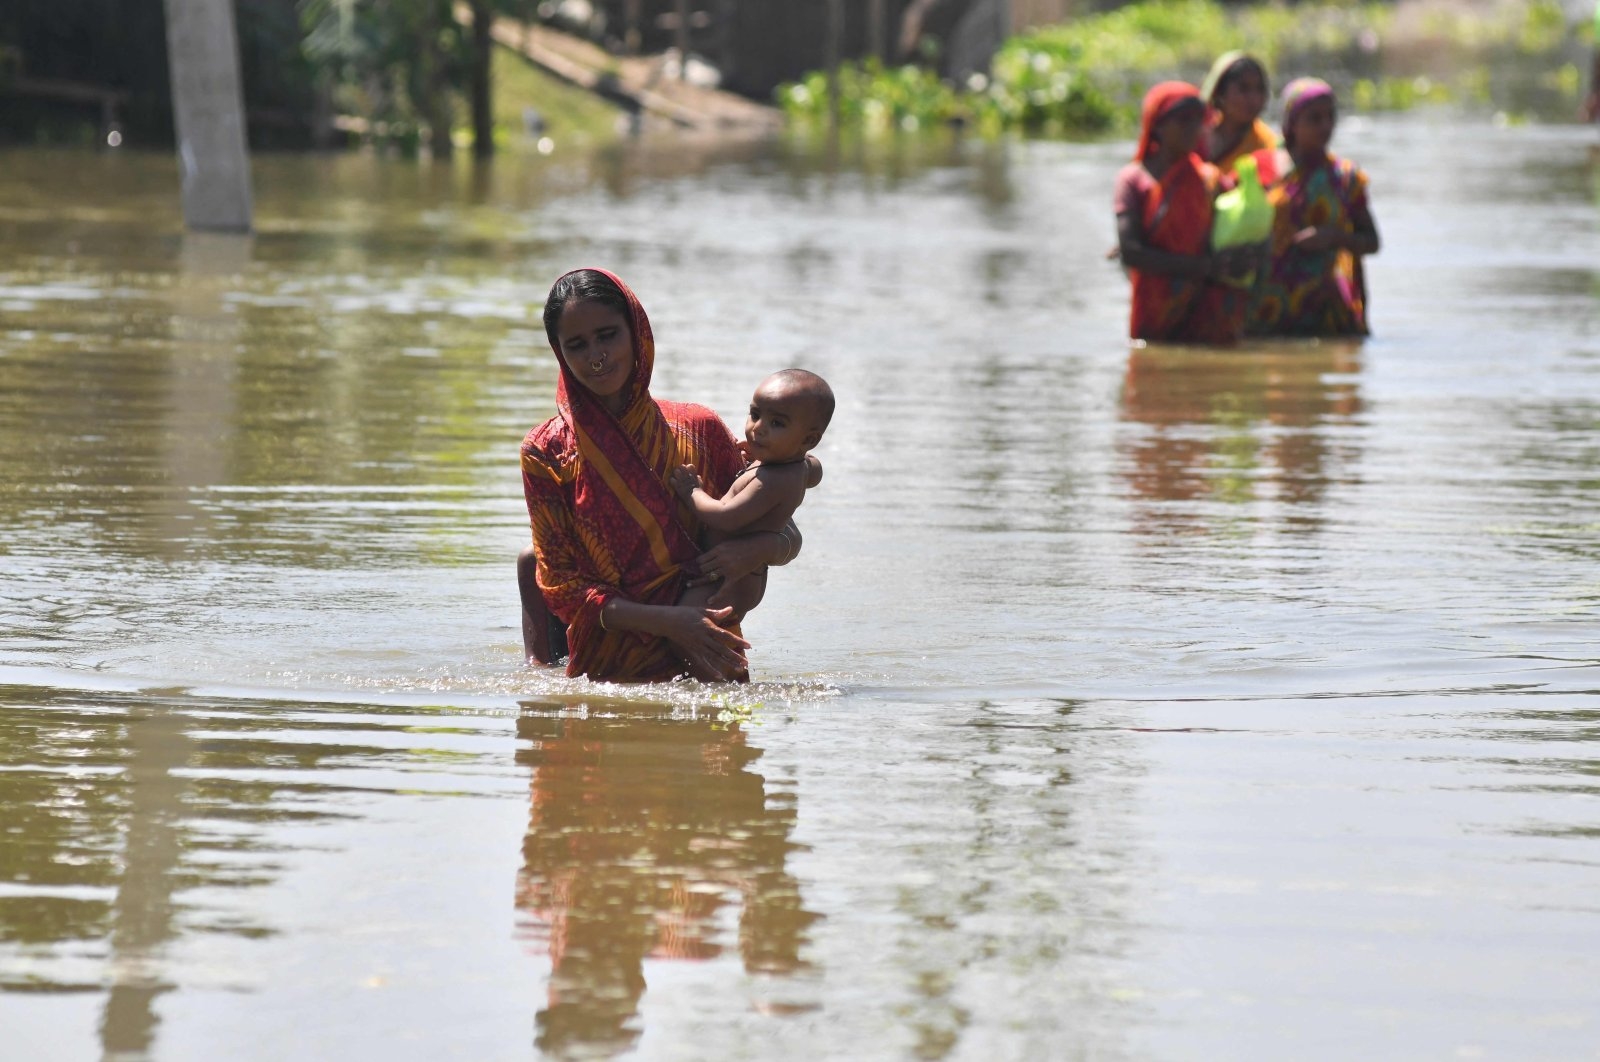 A woman carrying her child wades along a road in a flood-affected area following heavy monsoon rainfalls in Morigaon district in India's Assam state, Aug. 31, 2021. (AFP Photo)